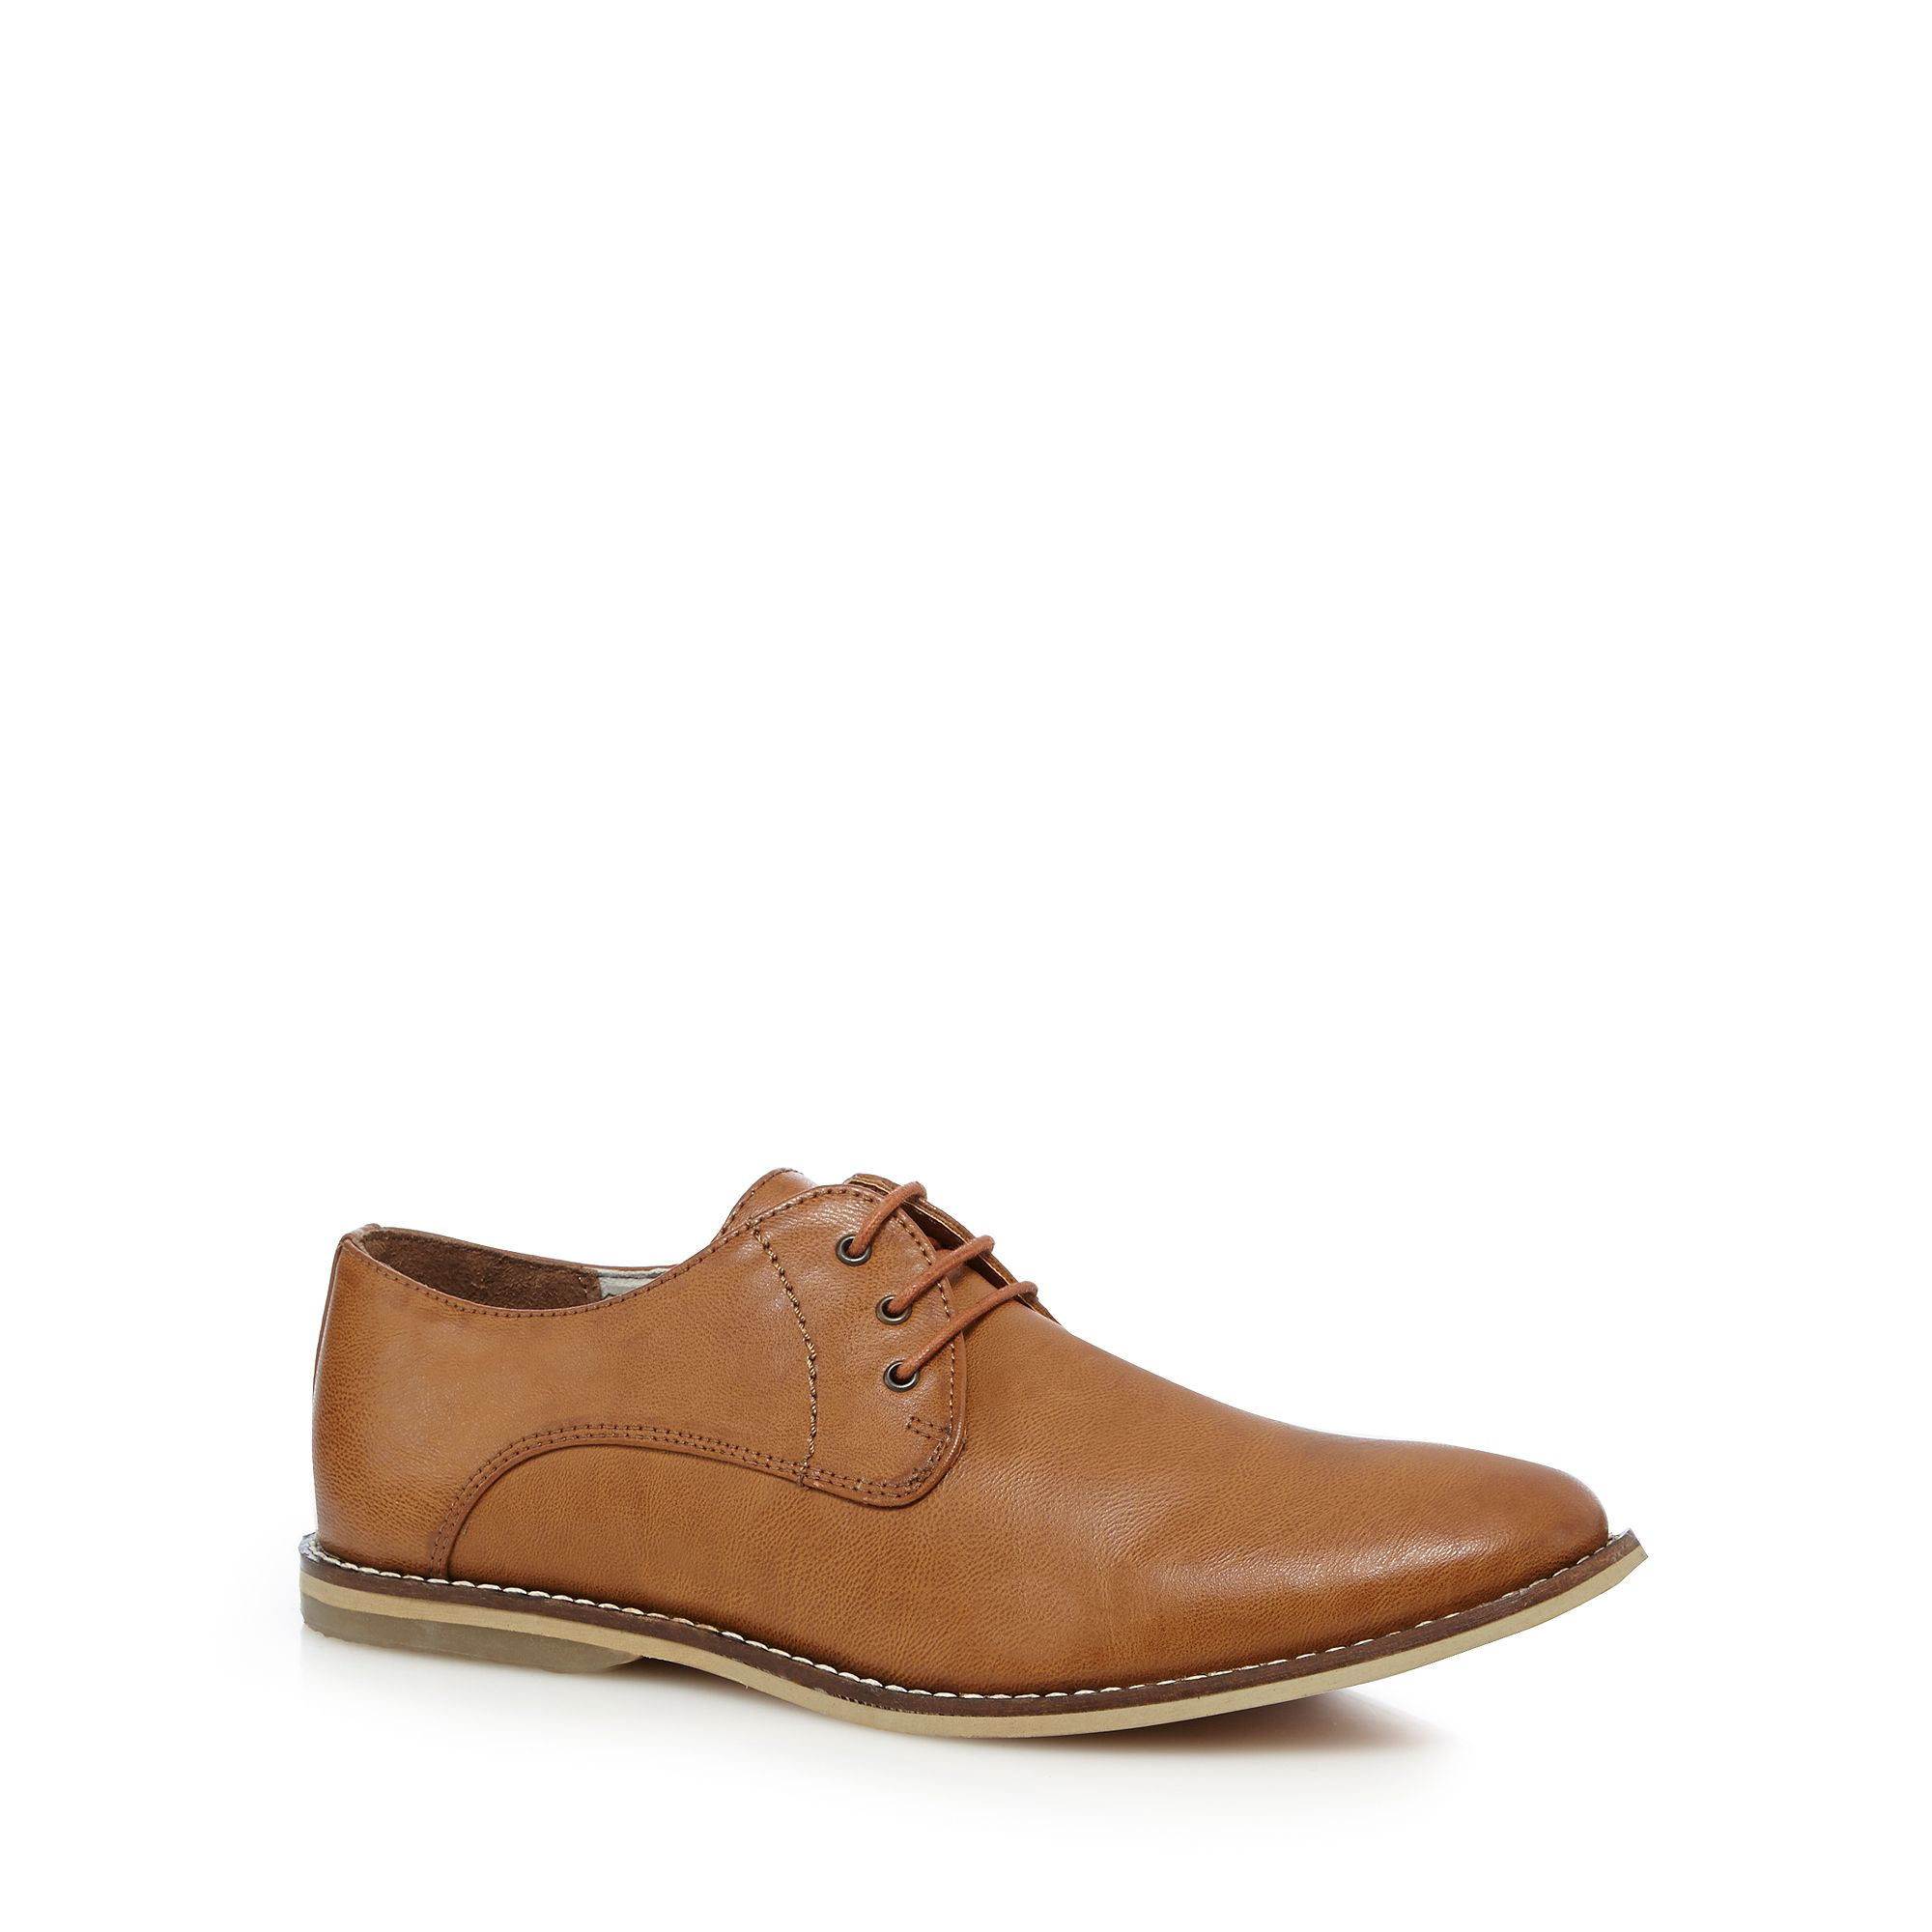 Debenhams Leather Shoes